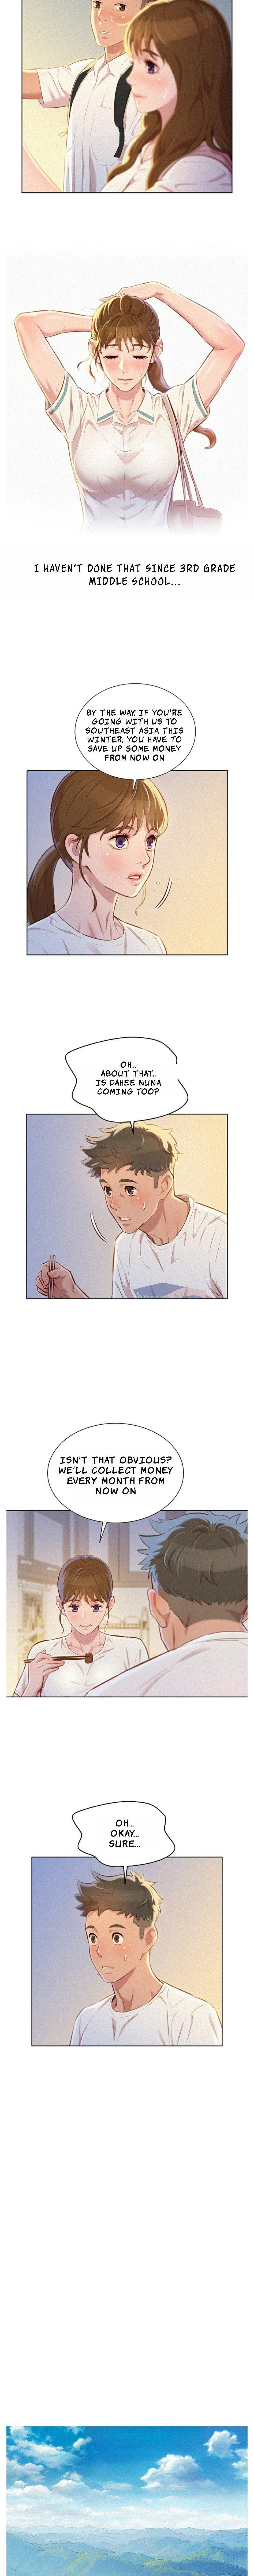 What do you Take me For? Ch.70/? 619